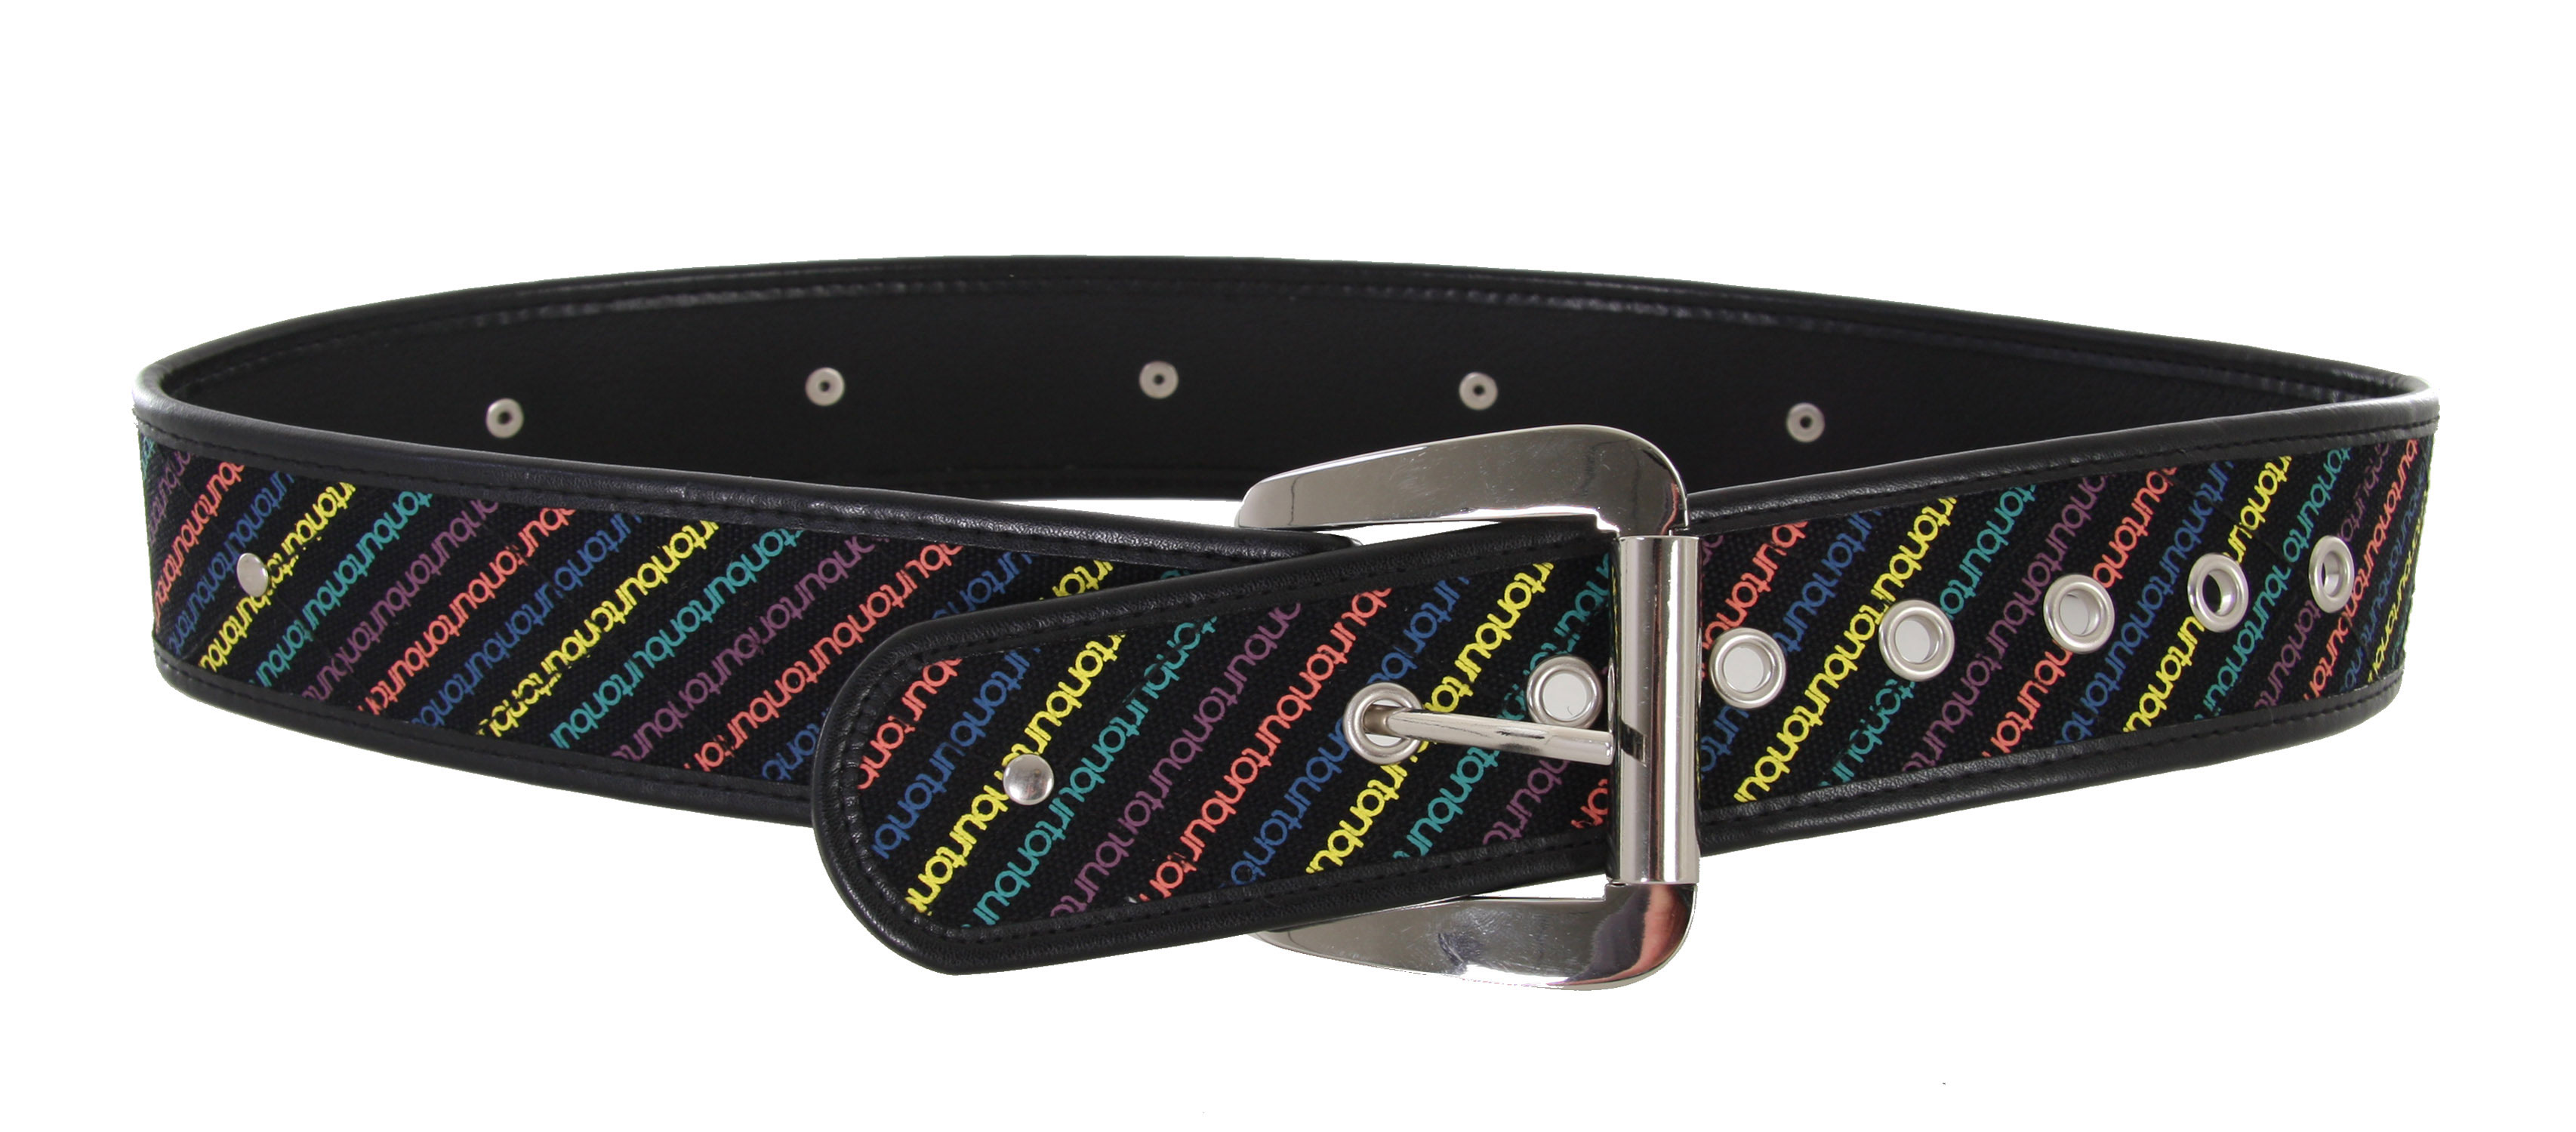 Snowboard The Burton Icon Belt is a PU Leather Belt with Embossed Youth Outerwear Print. - $17.95